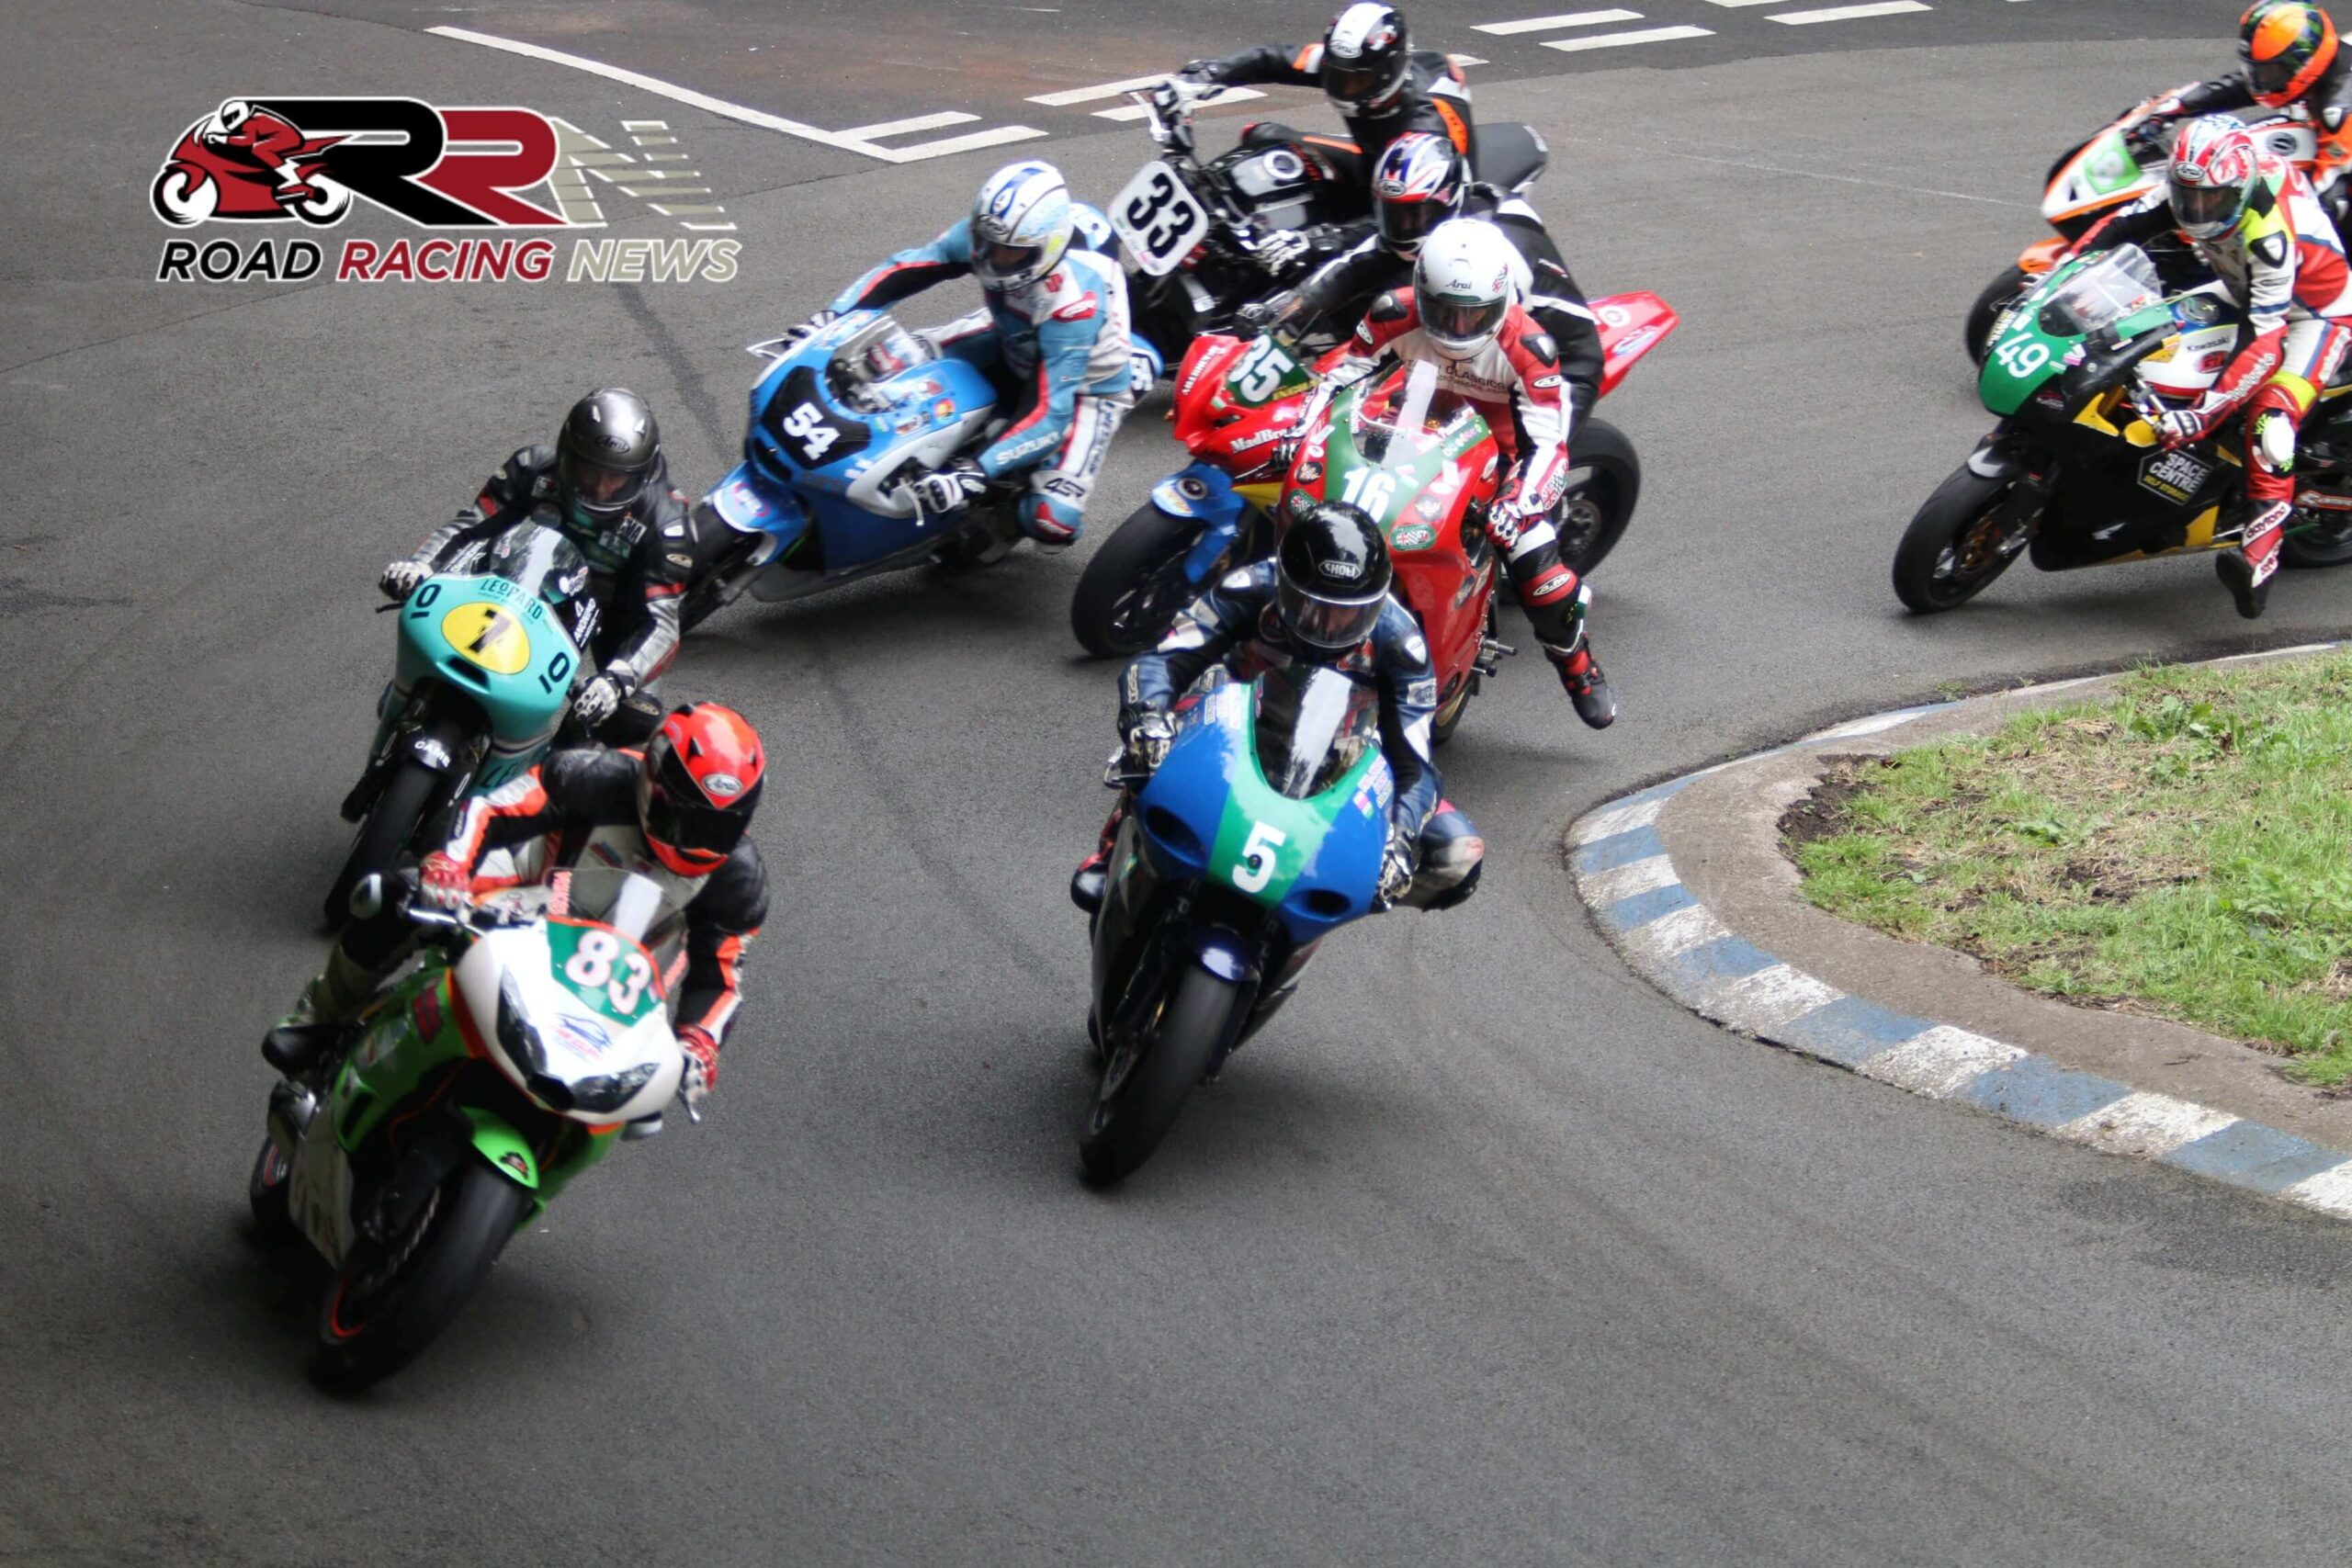 Viewpoint: Experiencing The 'New Racing Normal'